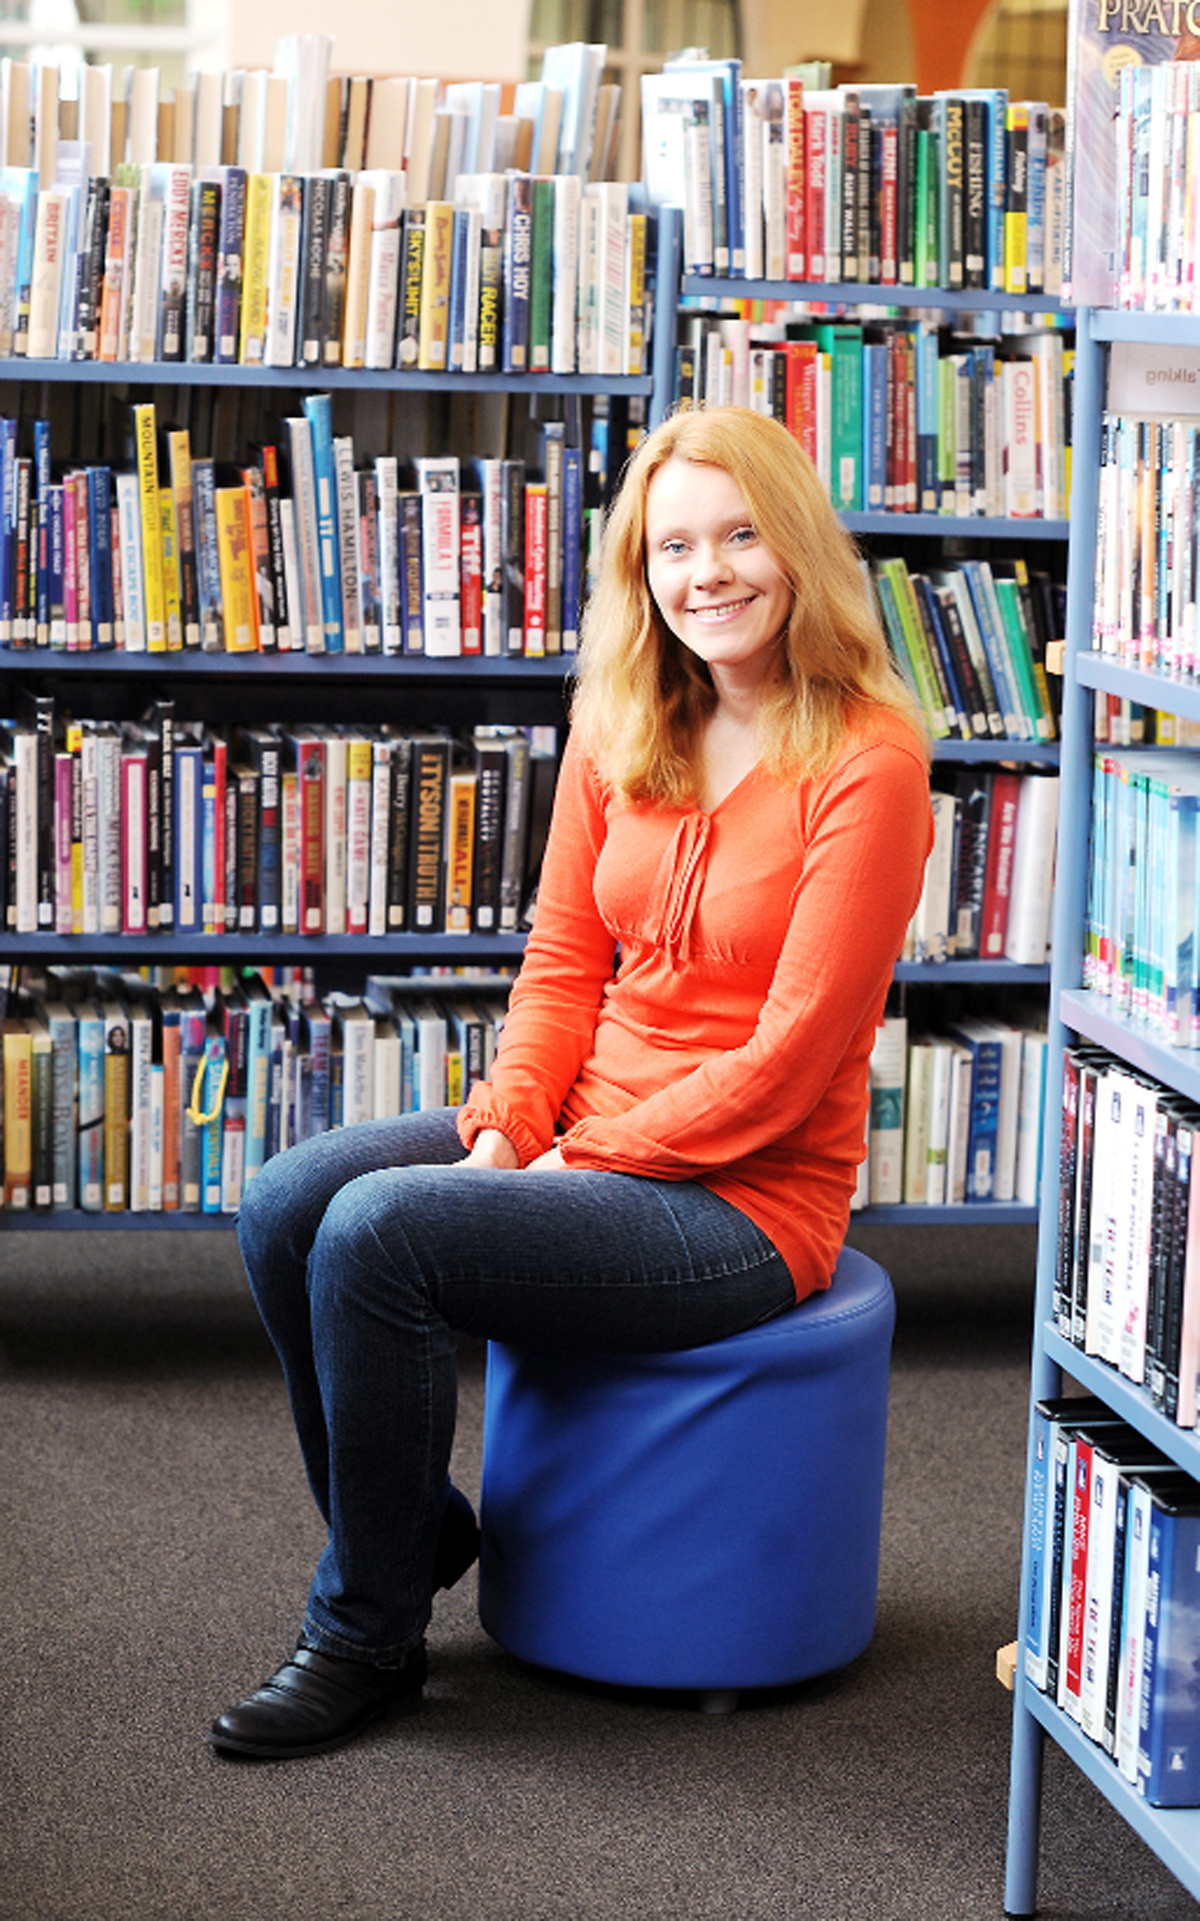 Kinga Cichowska works at Kendal Library and teaches Polish